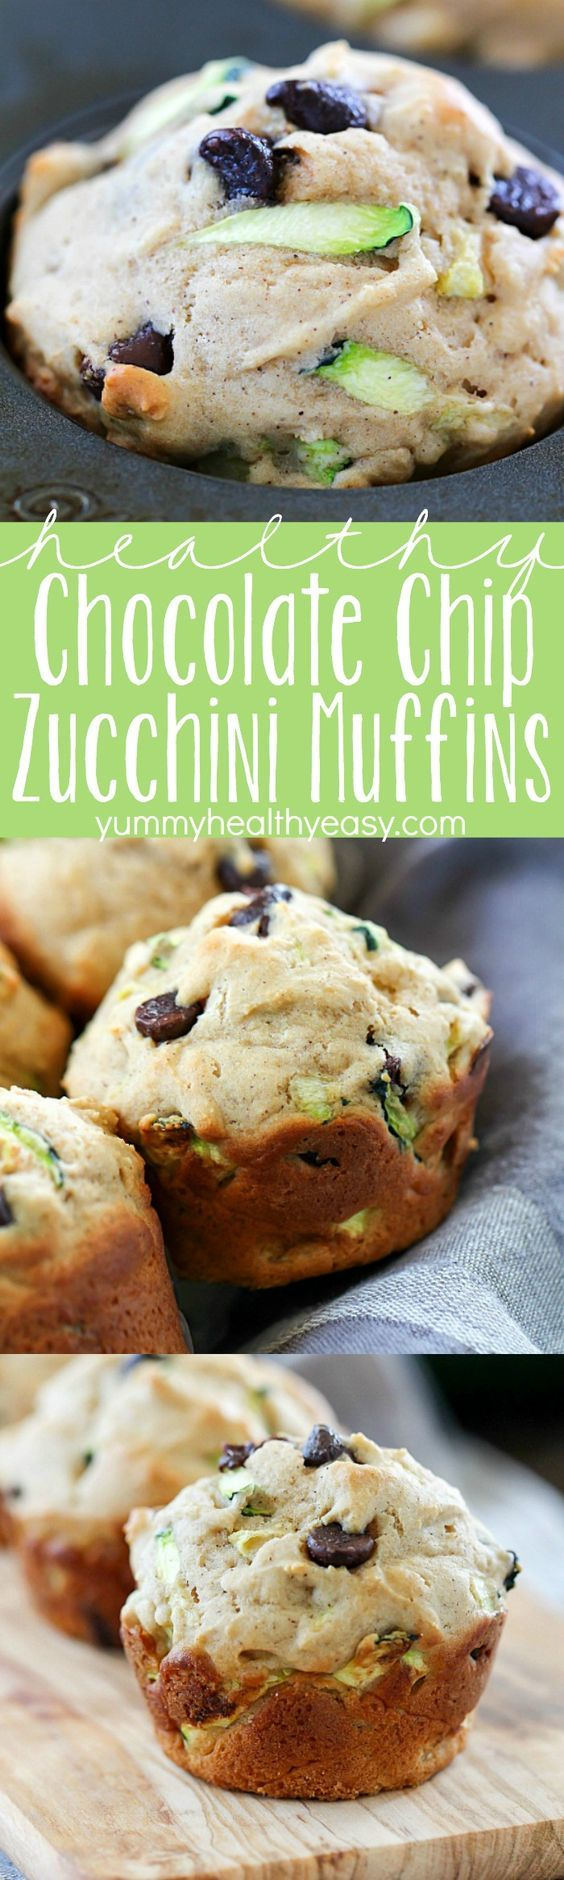 Chocolate Chip Zucchini Muffins ~ the best of both worlds...healthy AND decadent! They're full of tender zucchini and chocolate chips but are made healthier by using applesauce instead of lots of butter, perfect as a yummy breakfast or after-school snack!